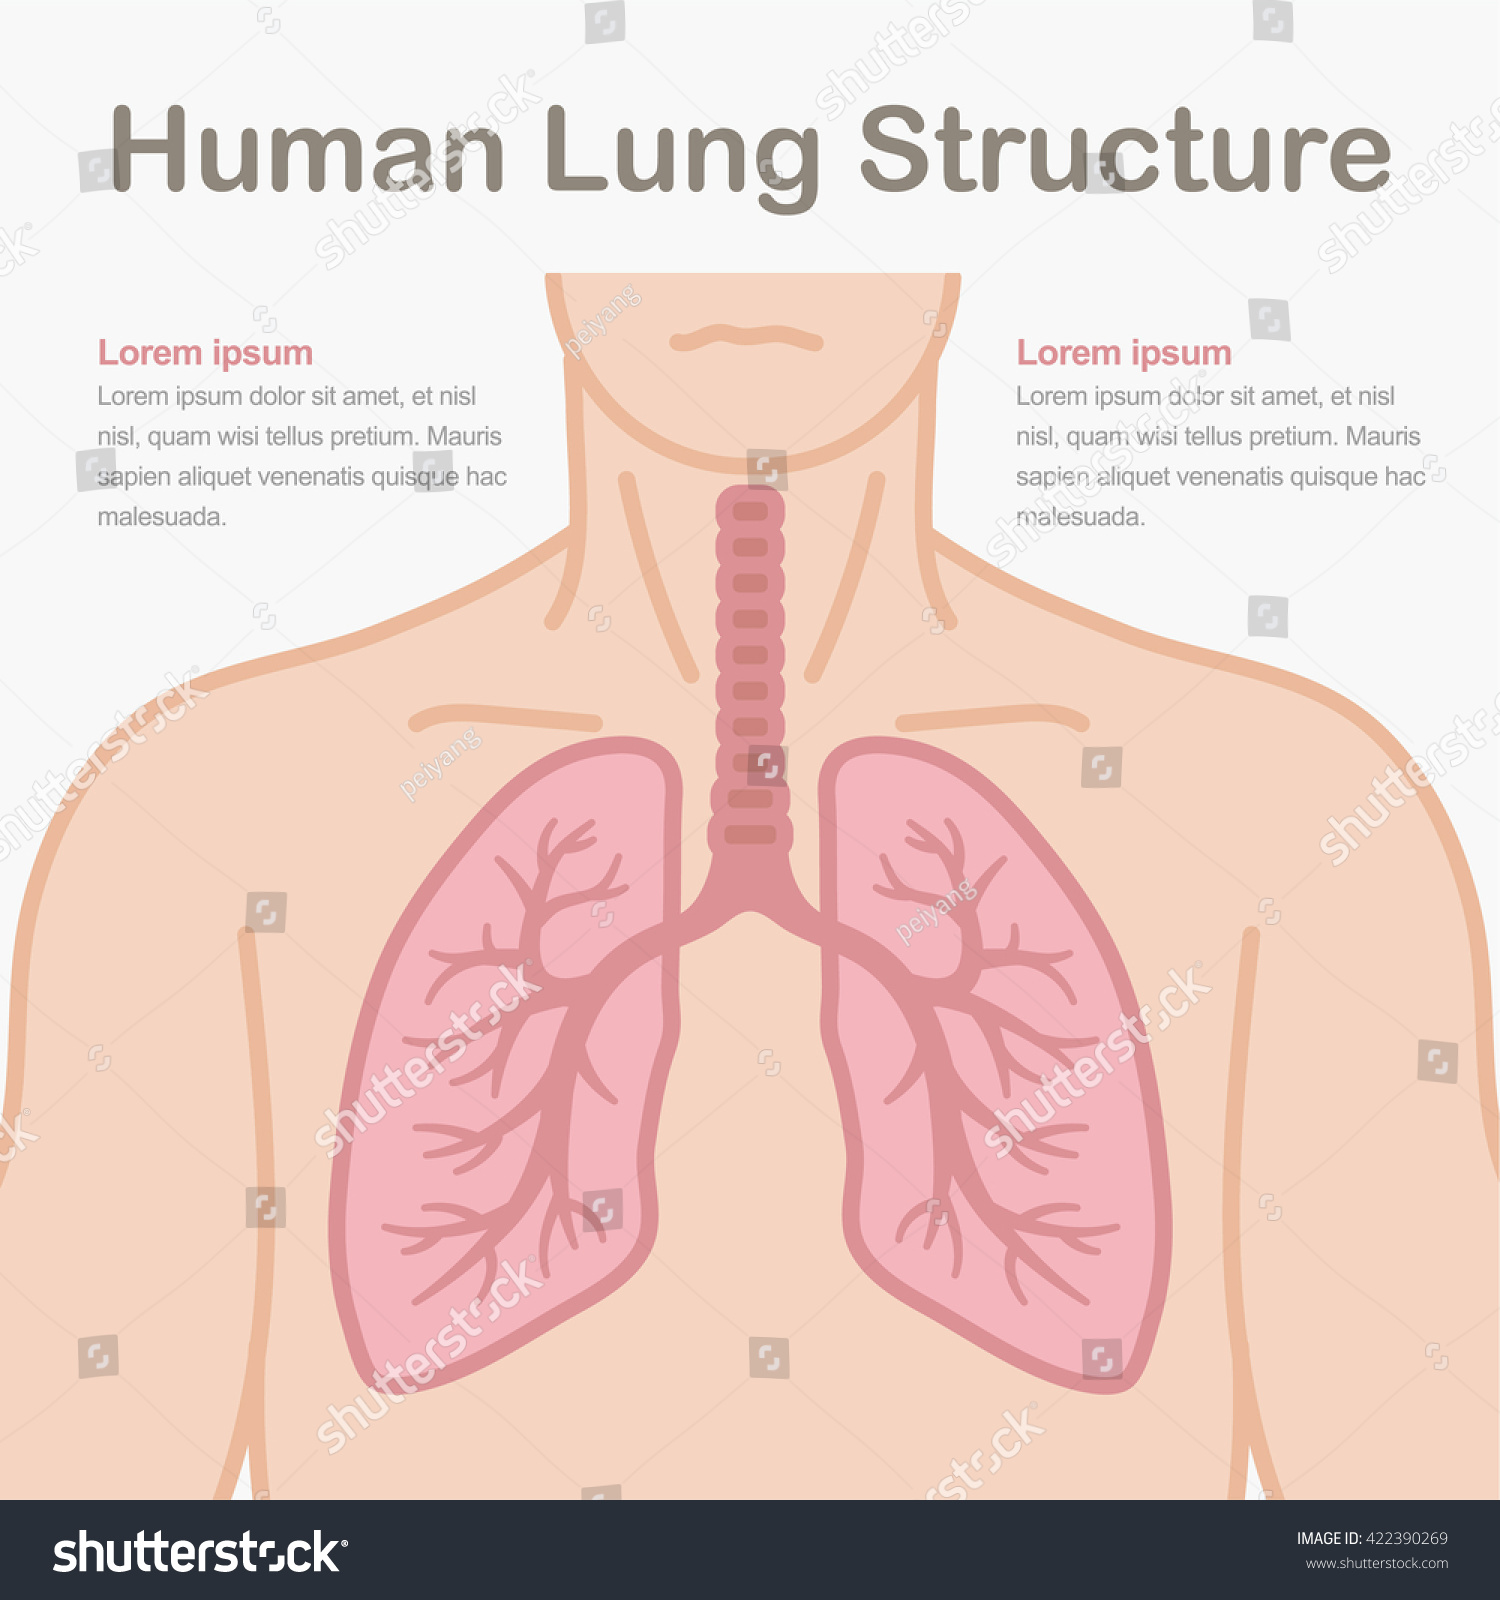 Medical Illustration Showing Structure Human Lungs Stock Vector